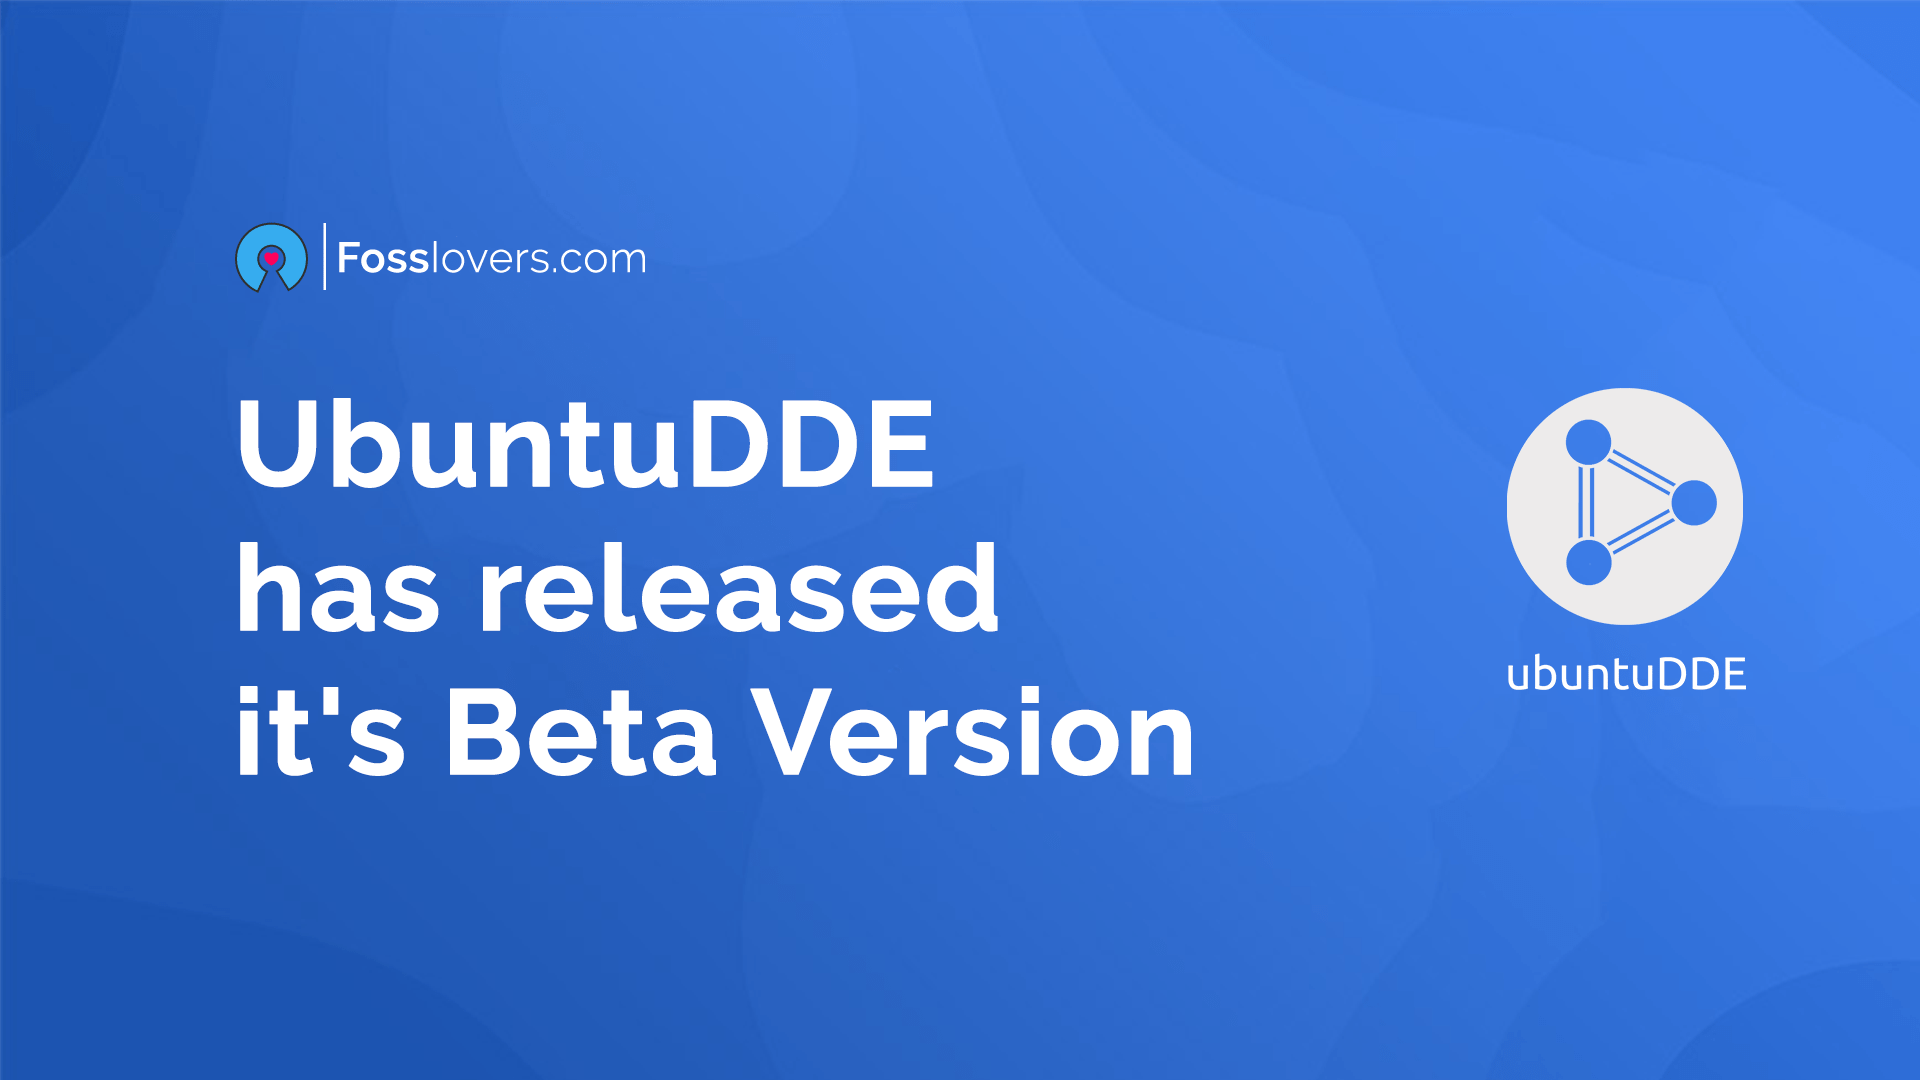 UbuntuDDE has released it's Beta Version